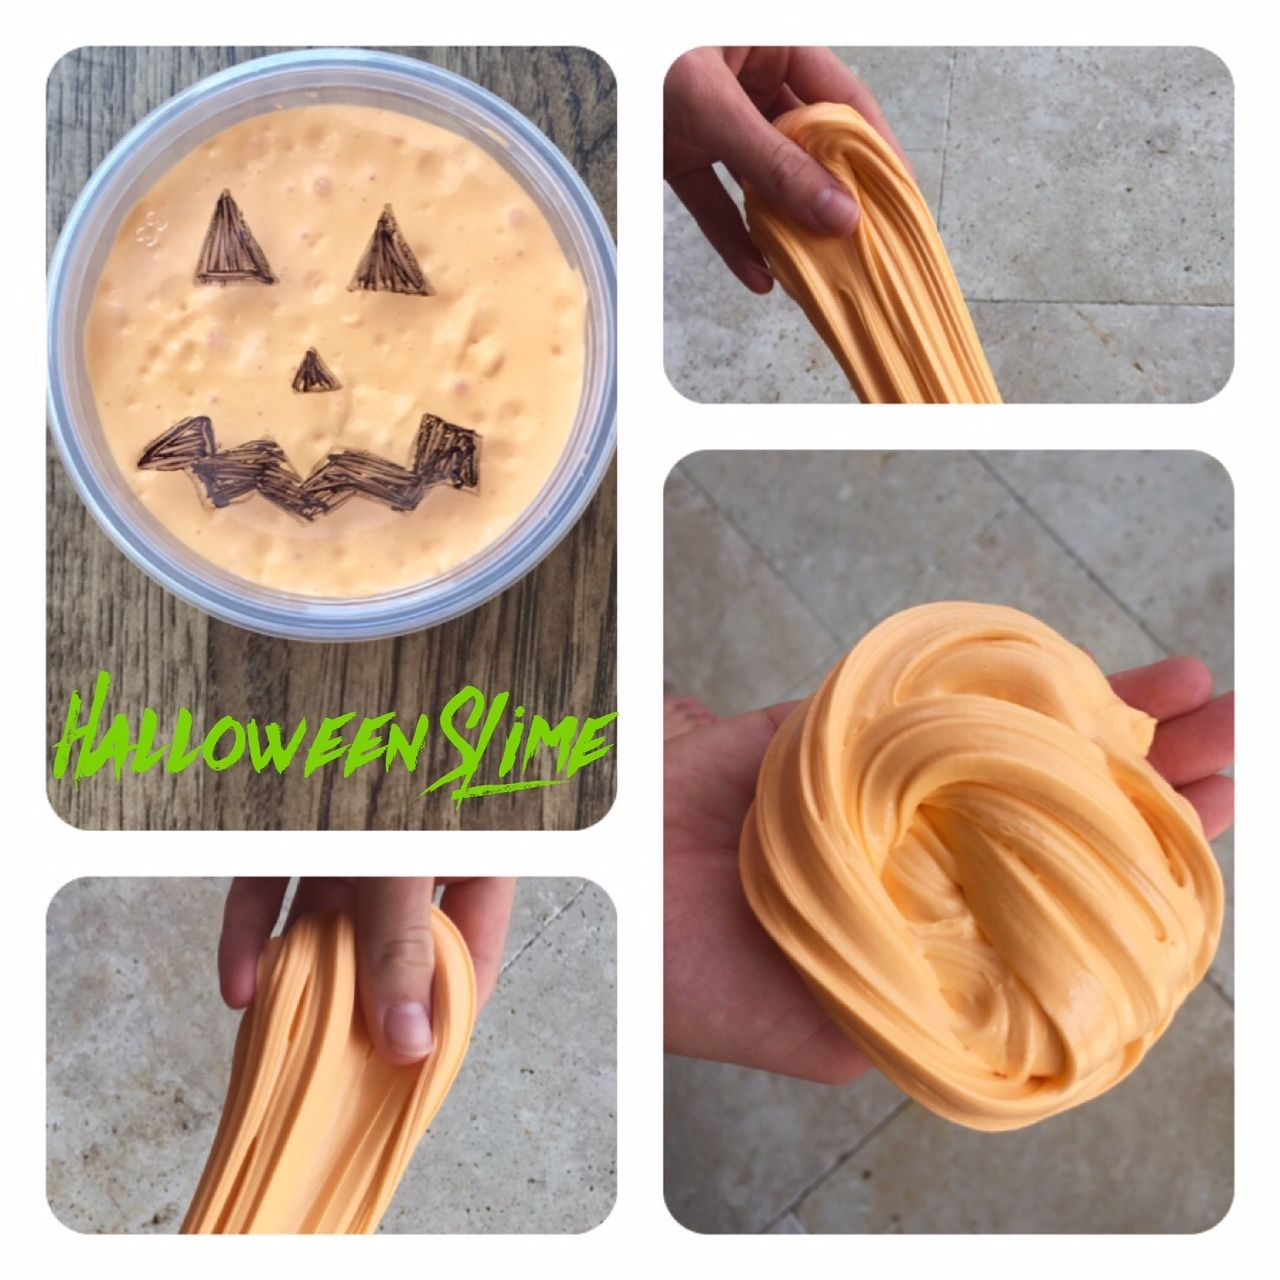 Try This Creepy Halloween Slime Recipe With Your Crafty